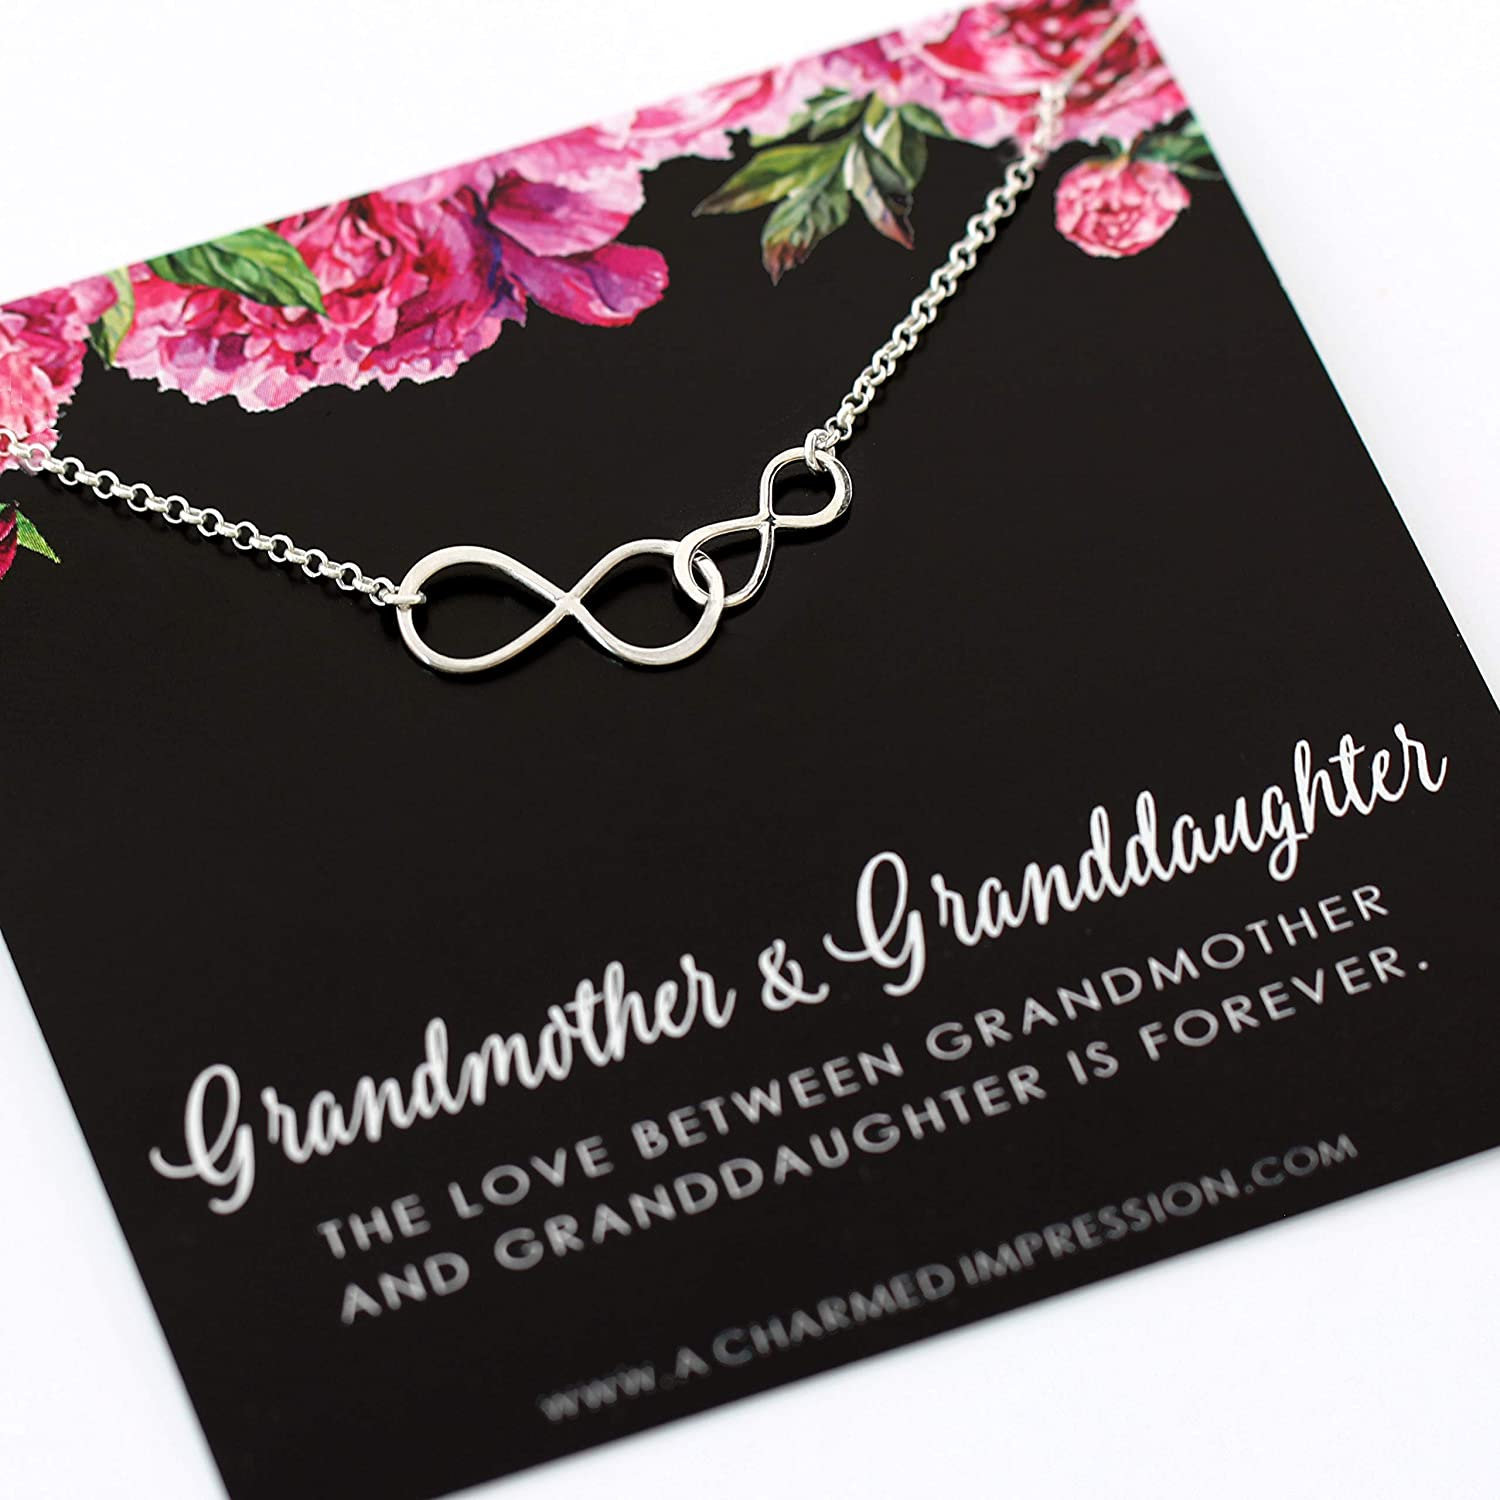 Grandmother & Granddaughter • Double Infinity Necklace • Unique Gift for Grandma • Infinite Love • Sterling Silver • Personalized Keepsake Jewelry